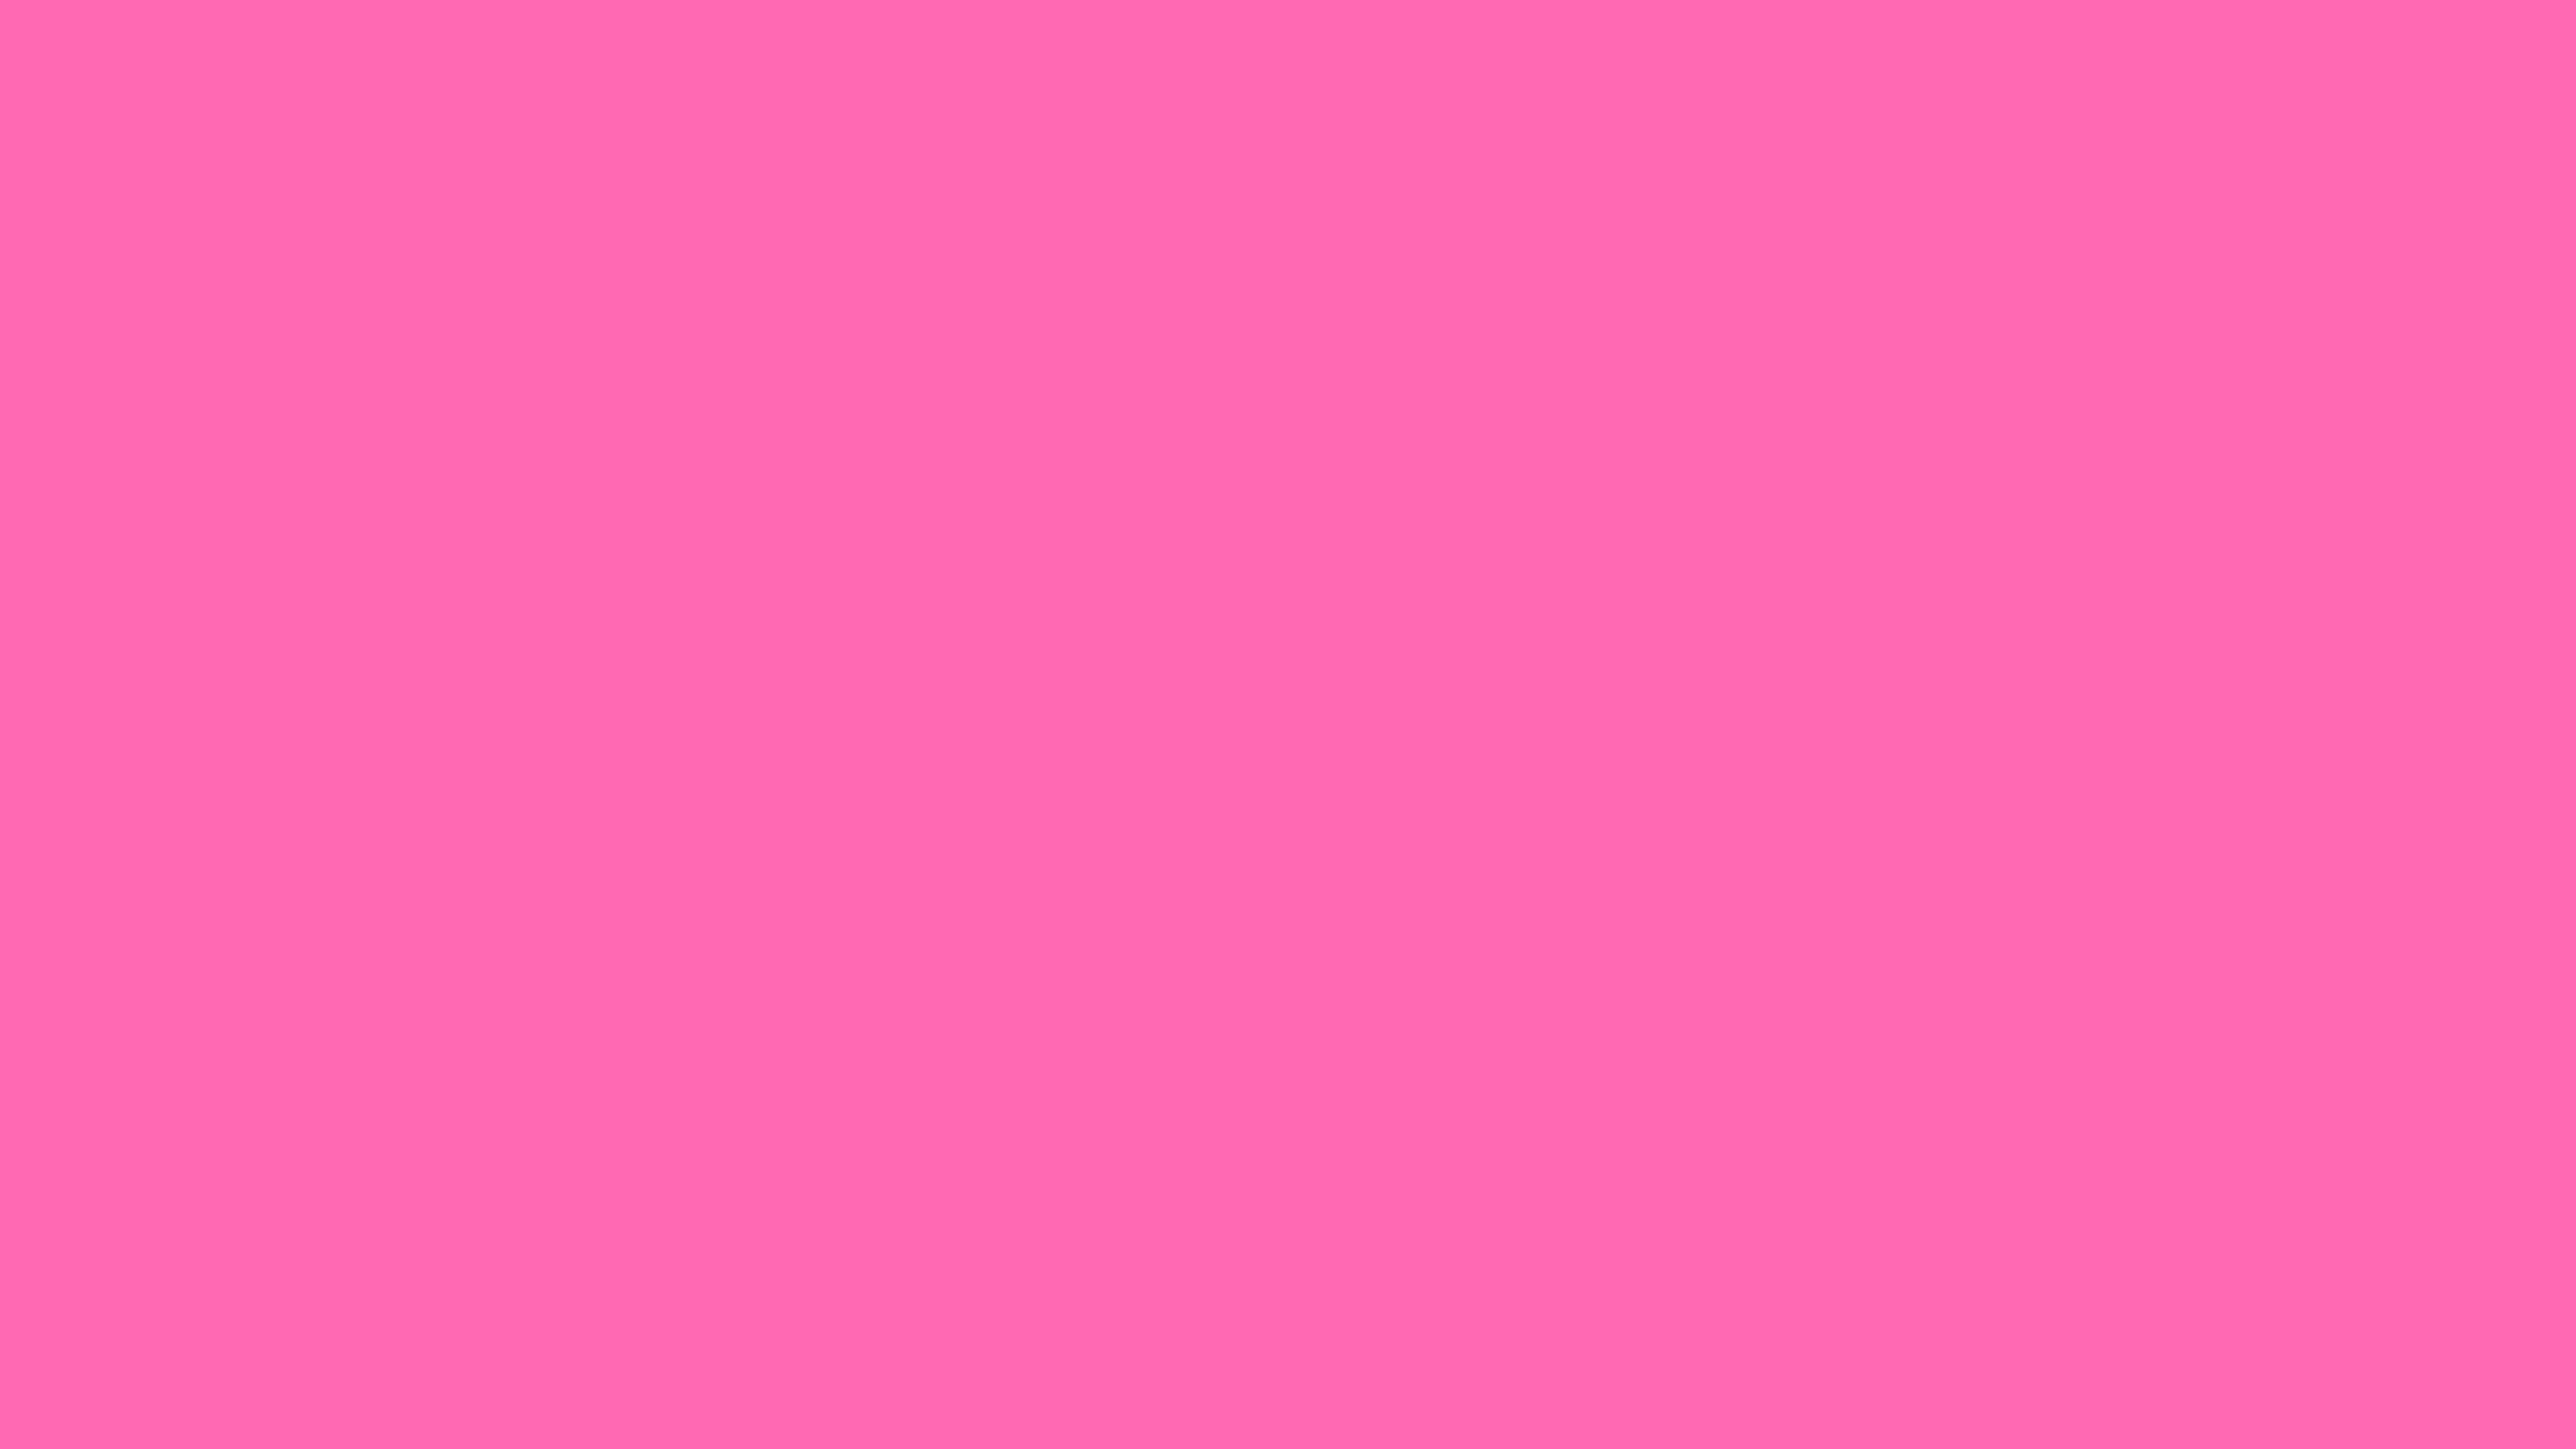 3840x2160 Hot Pink Solid Color Background